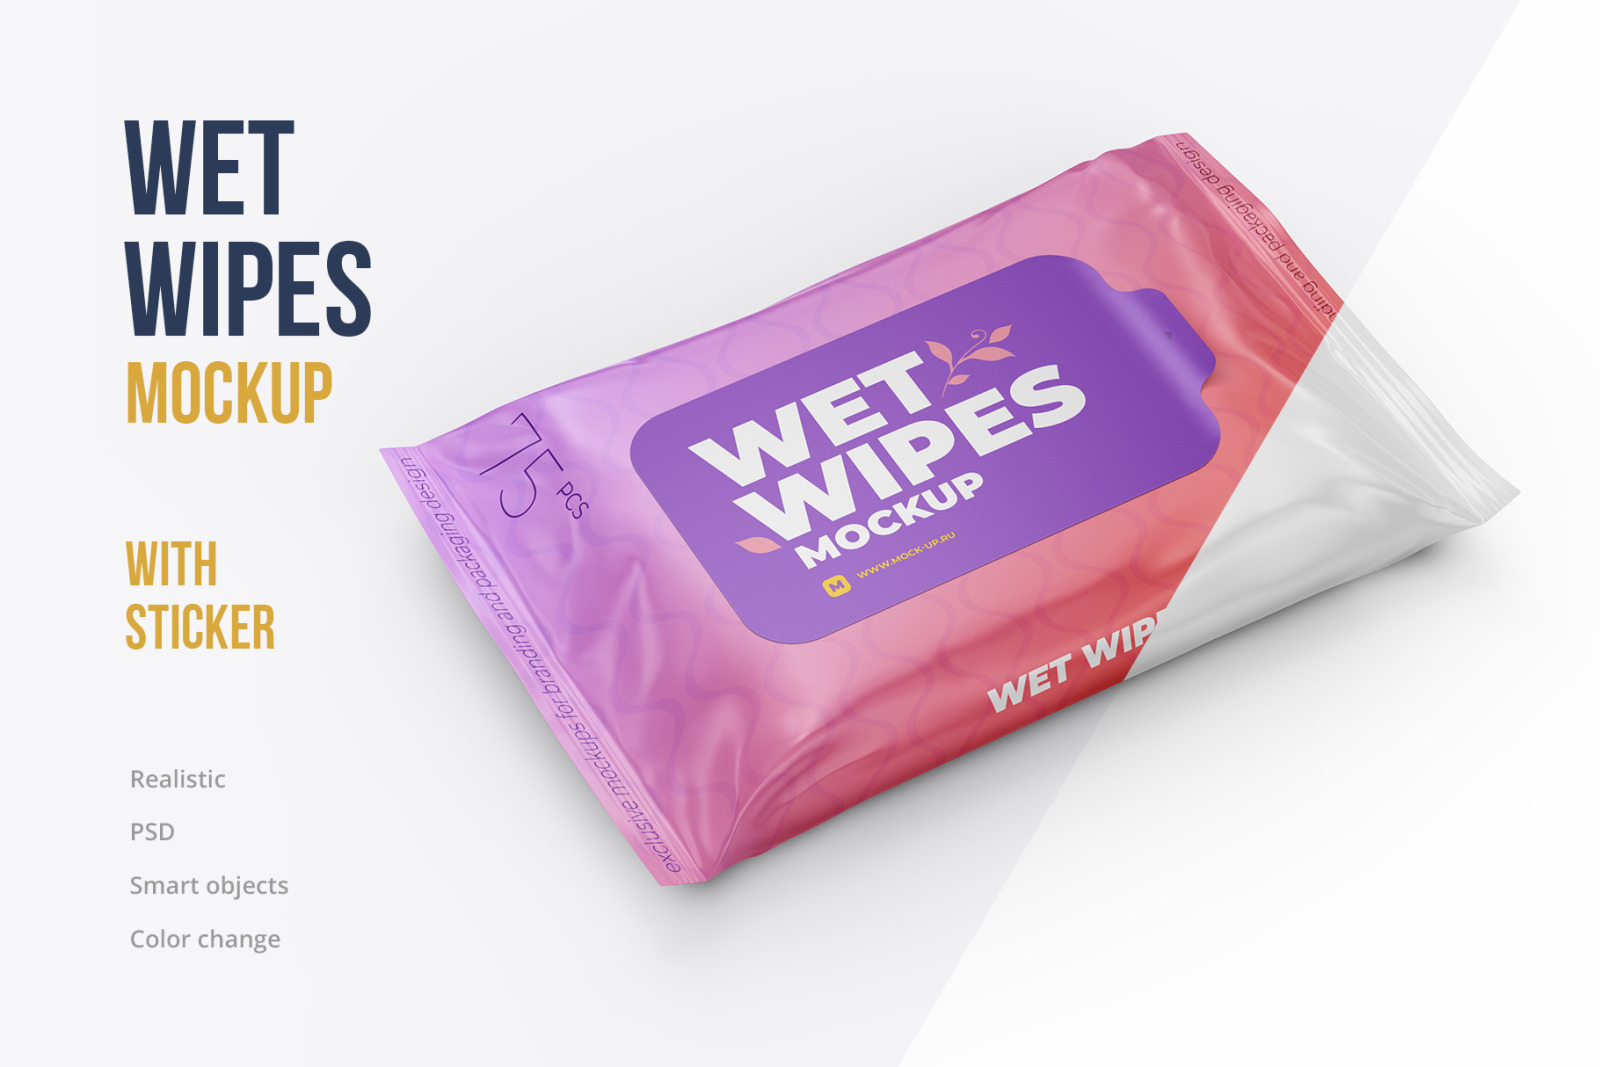 Wet Wipes with Sticker Mockup - Angle view